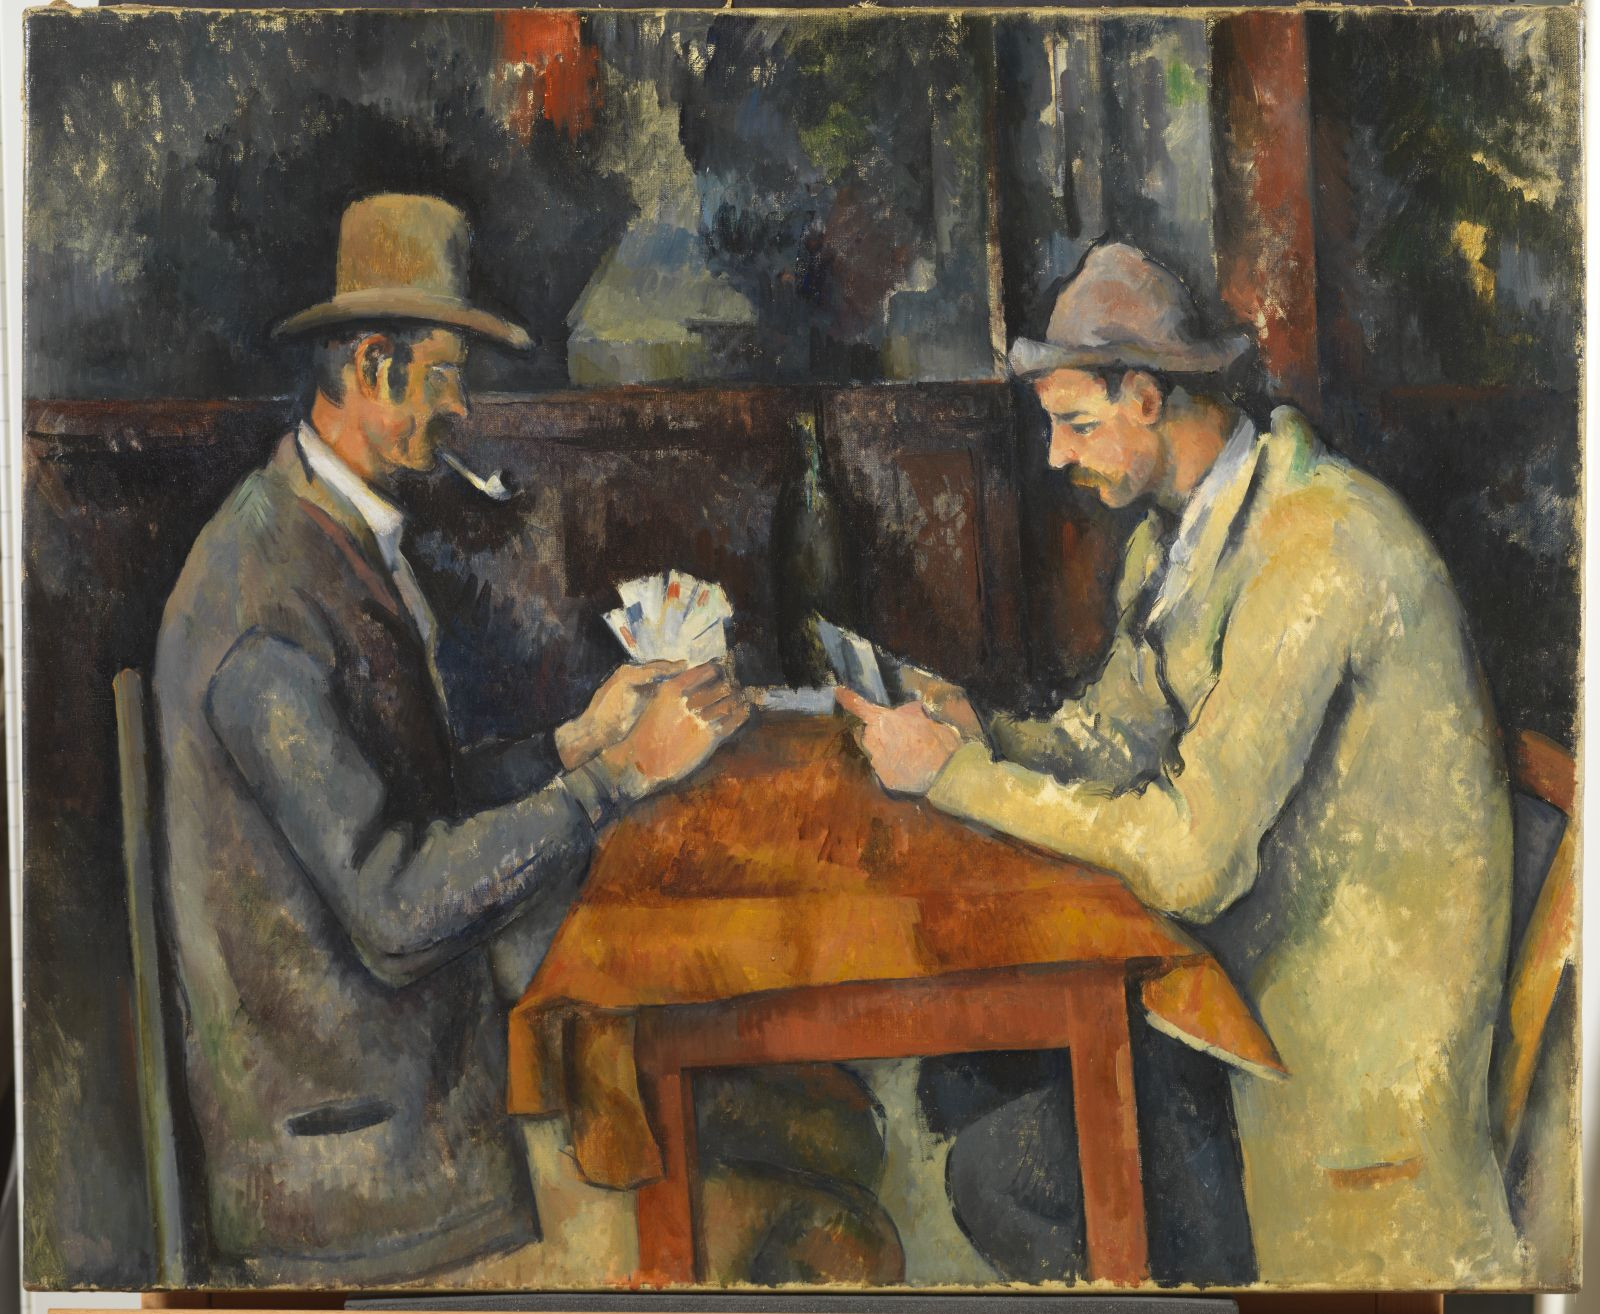 cezanne blue vase of paul cazanne the card players 1892 95 courtauld institute of with regard to paul cazanne the card players 1892 95 courtauld institute of art london